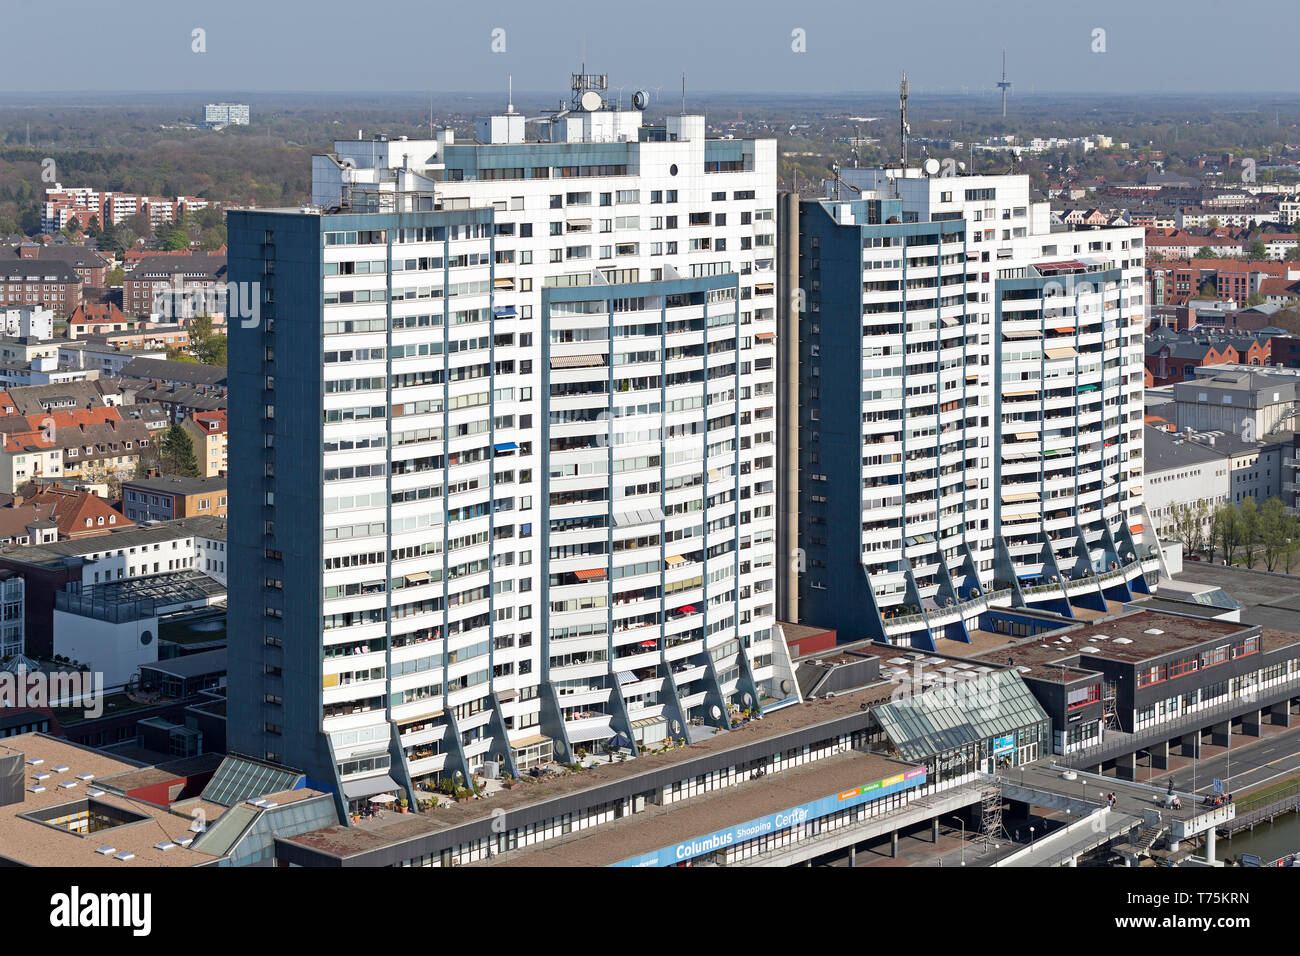 view of Columbus Center from the viewing platform of ATLANTIC Hotel Sail City, Bremerhaven, Bremen, Germany - Stock Image